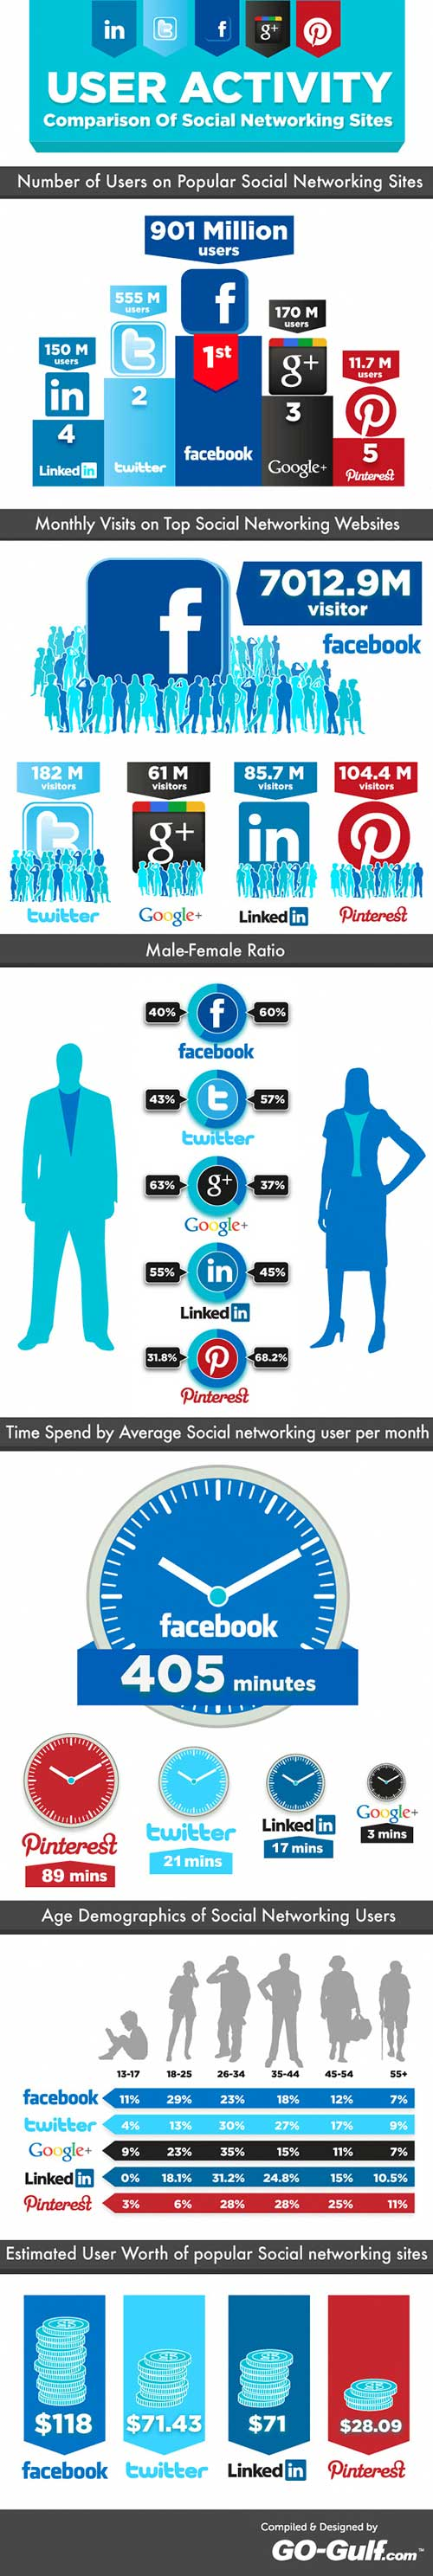 Comparaison Facebook, Twitter, Google Plus, LinkedIn et Pinterest